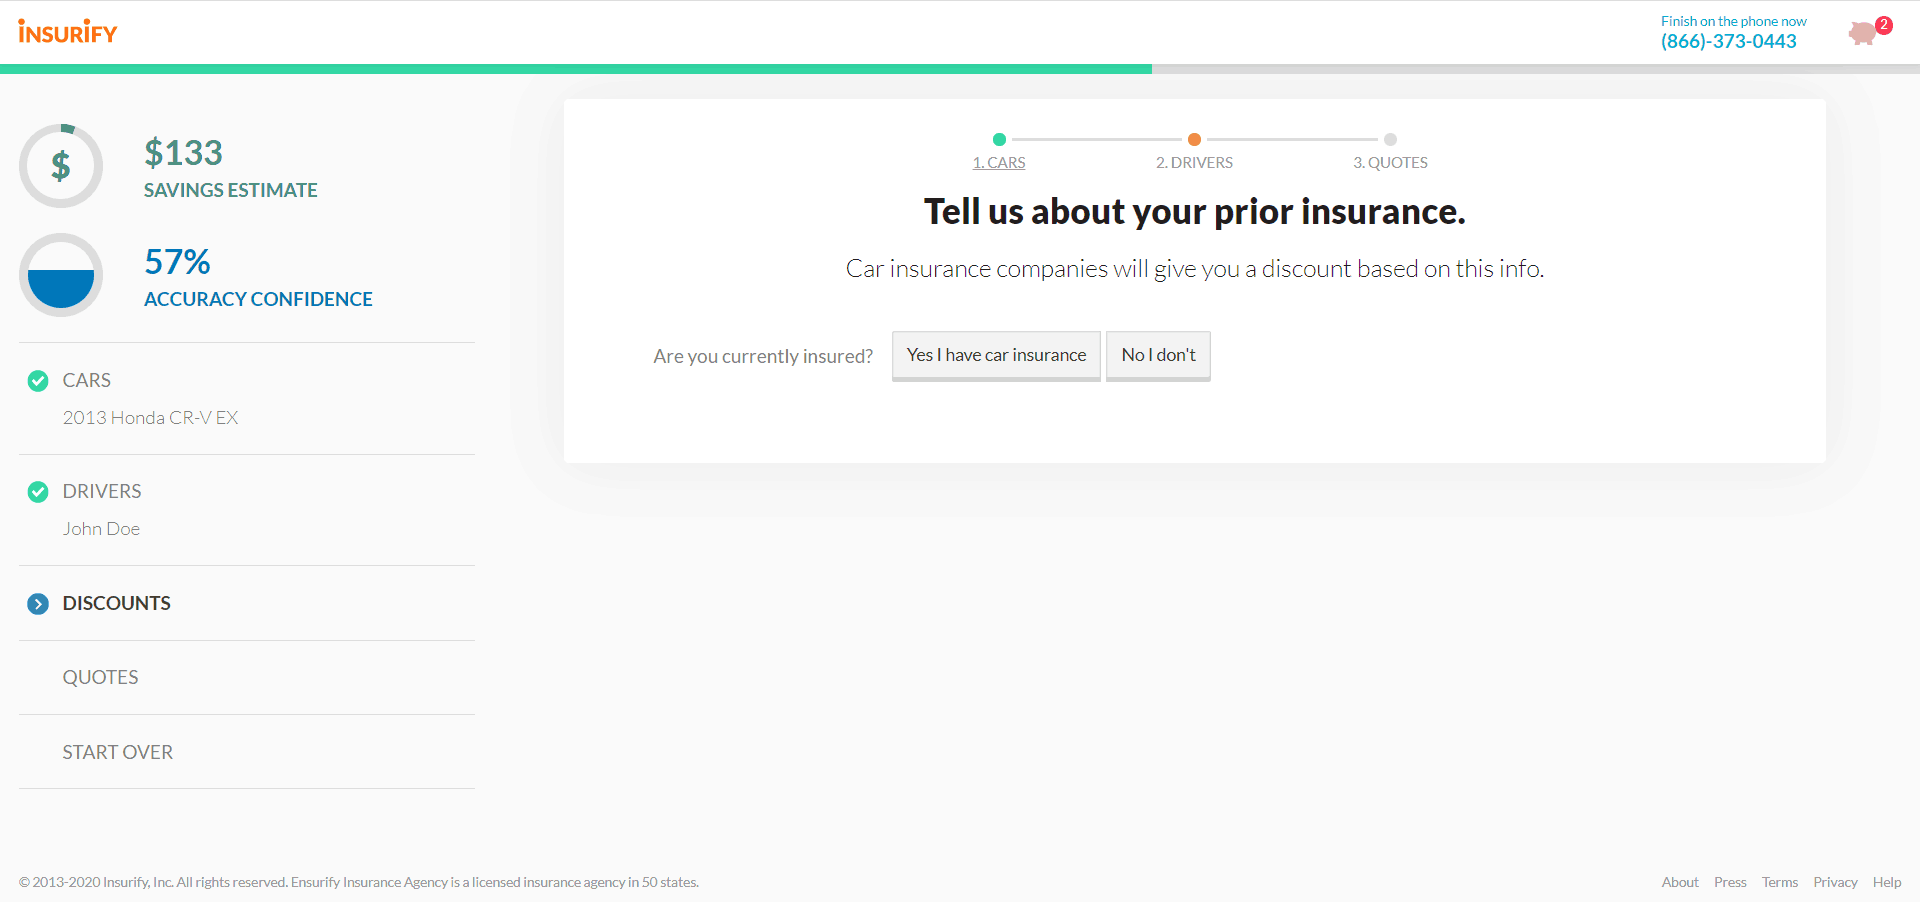 Insurify Website Car Insurance Quote Previous Insurance Info